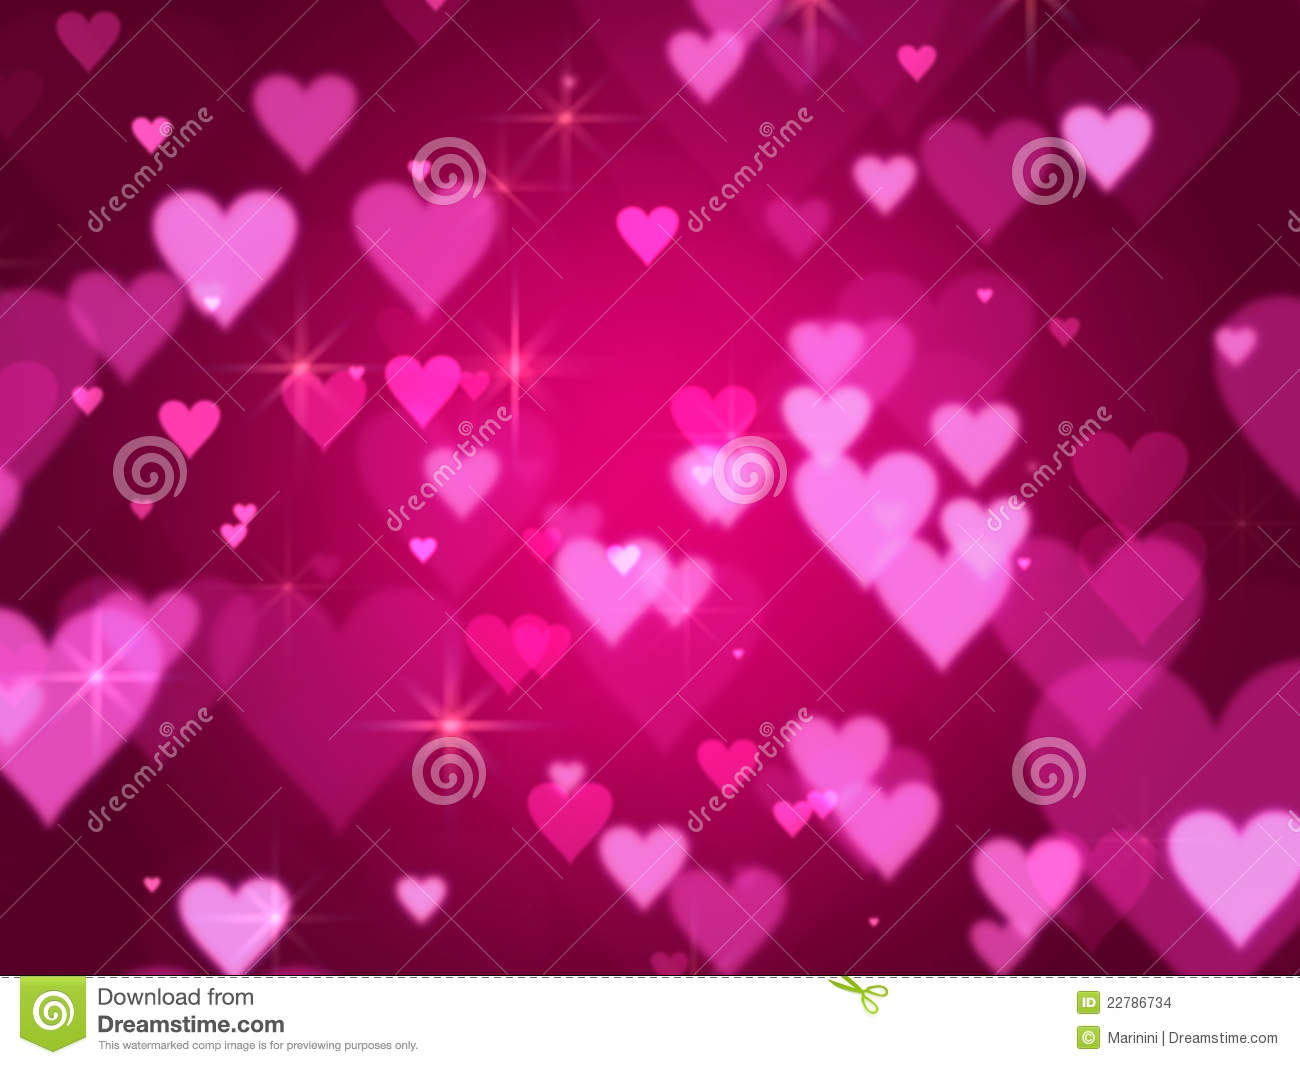 Pink Hearts Backgrounds - WallpaperSafari